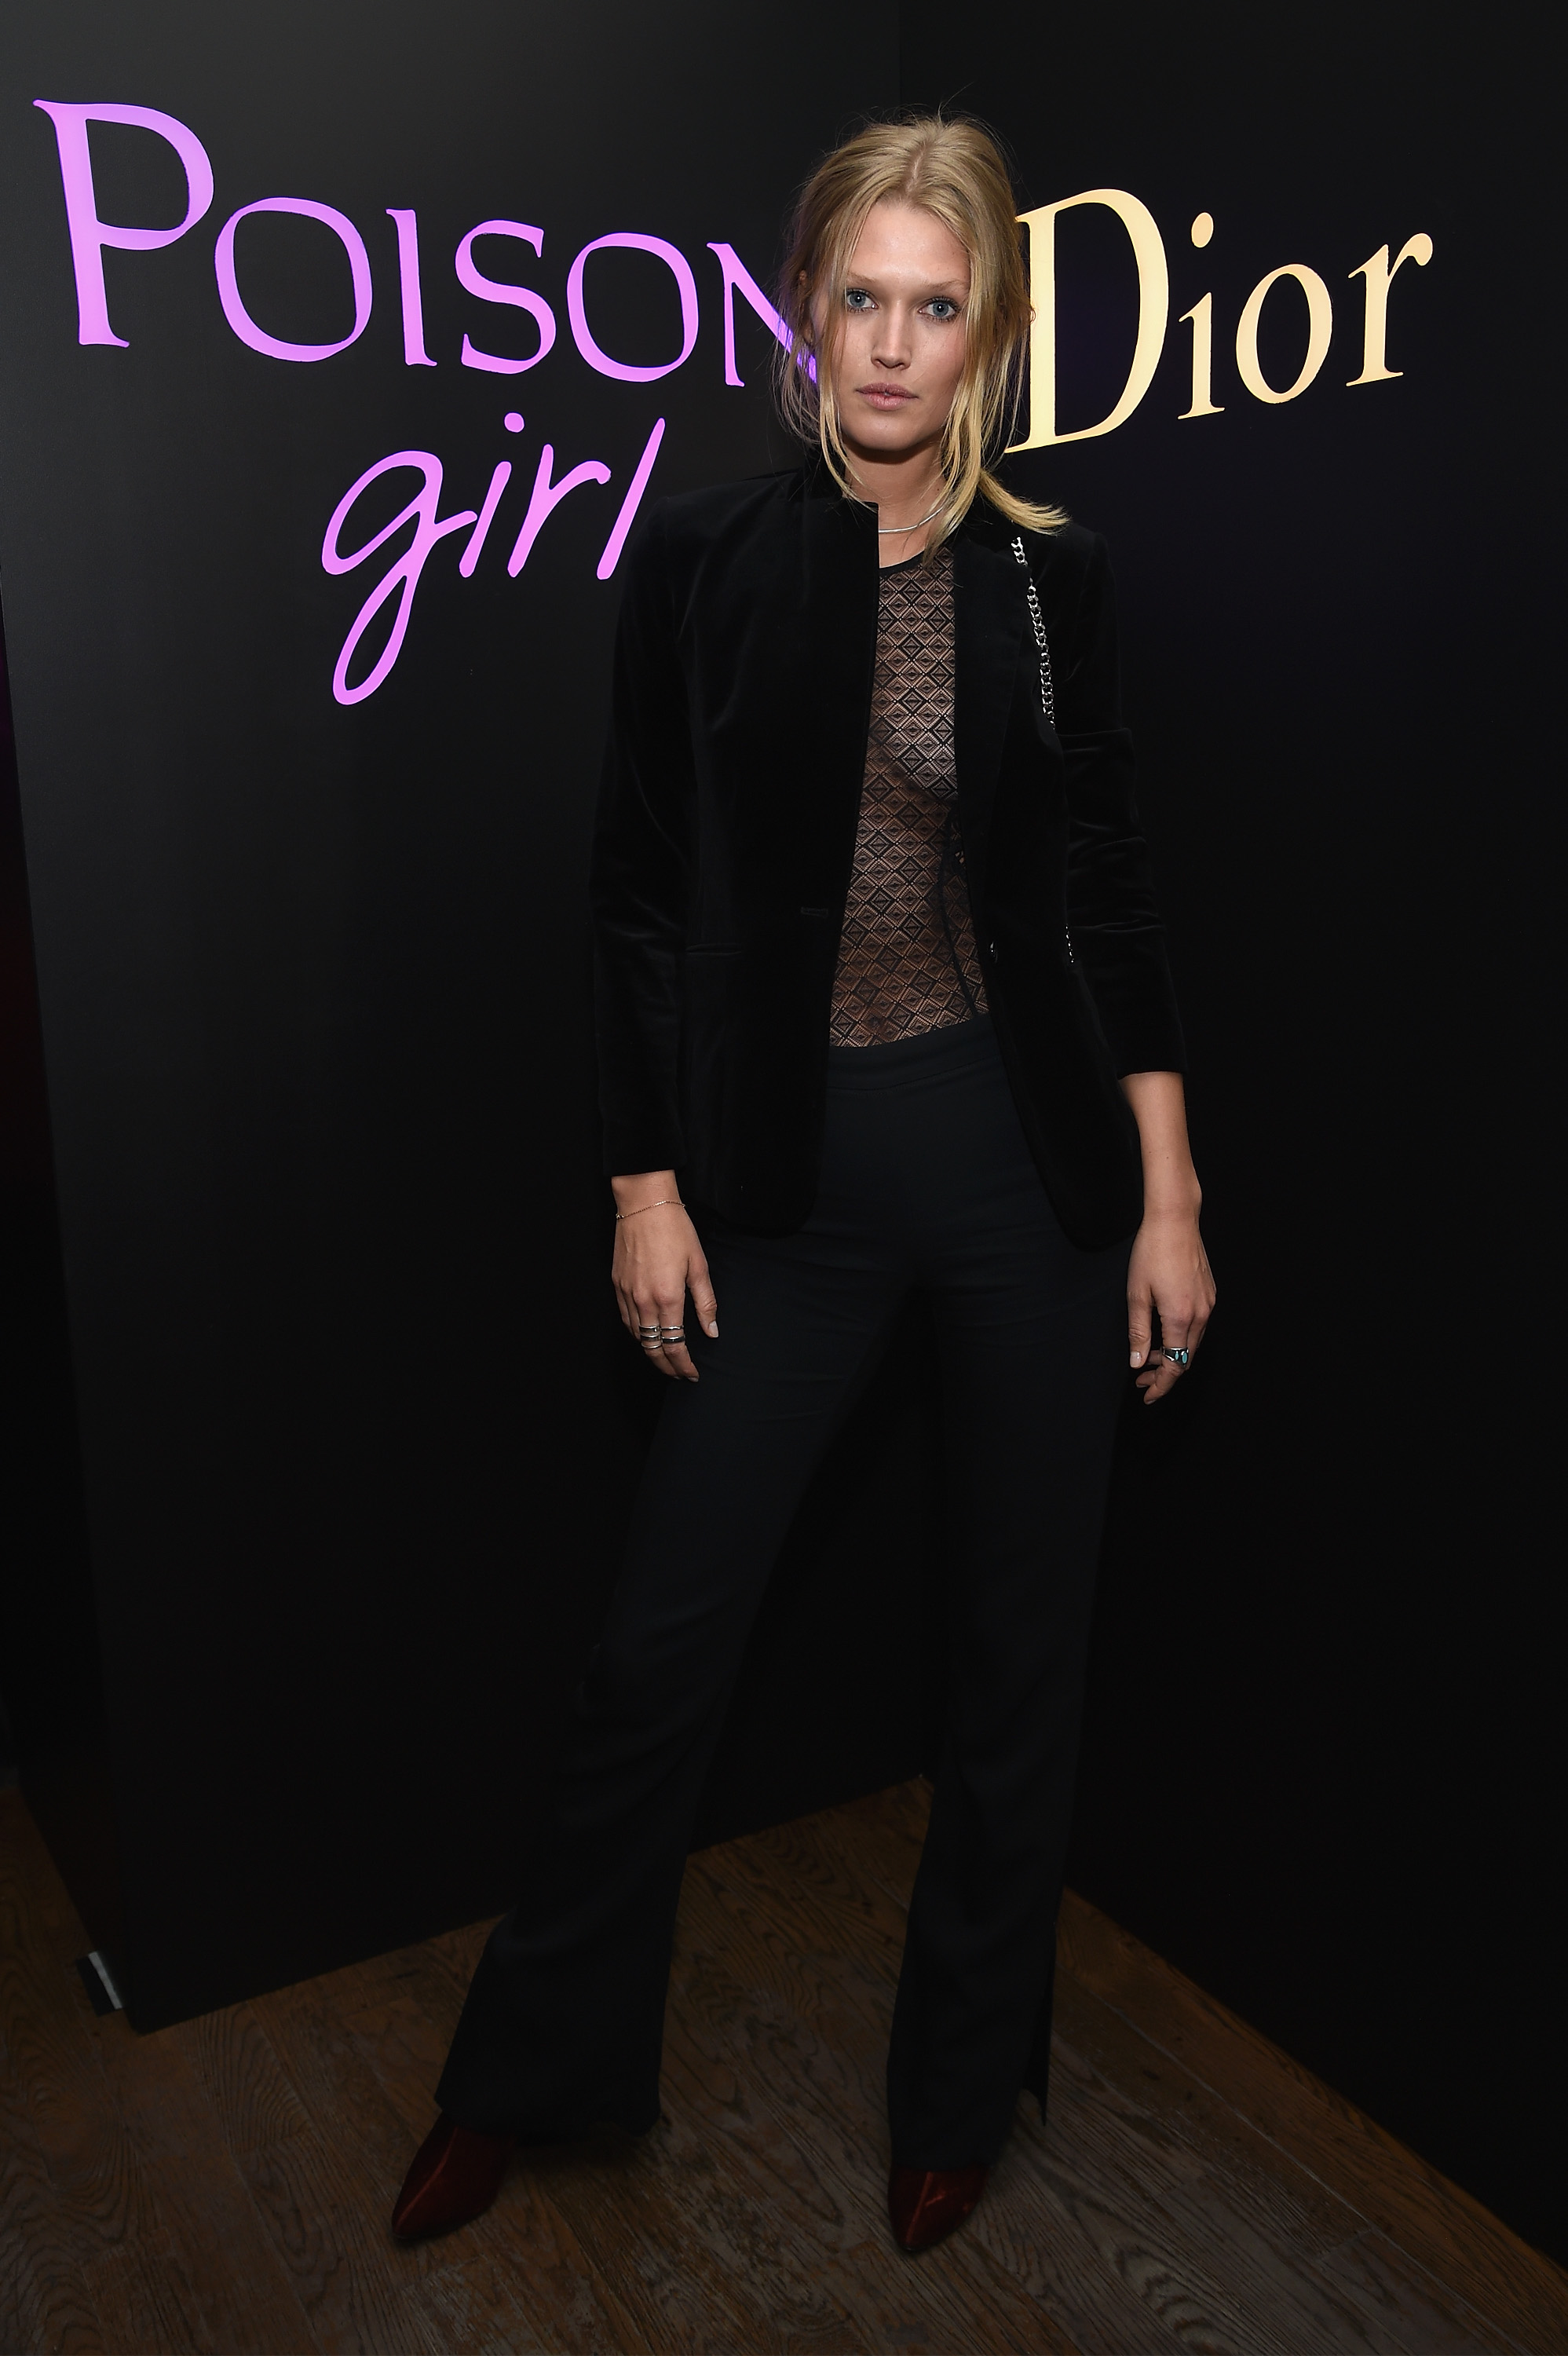 NEW YORK, NY - JANUARY 31:  Model Toni Garrn attends NY Poison Club hosted by Dior with Camille Rowe on January 31, 2017 in New York City.  (Photo by Dimitrios Kambouris/Getty Images for Dior Beauty)